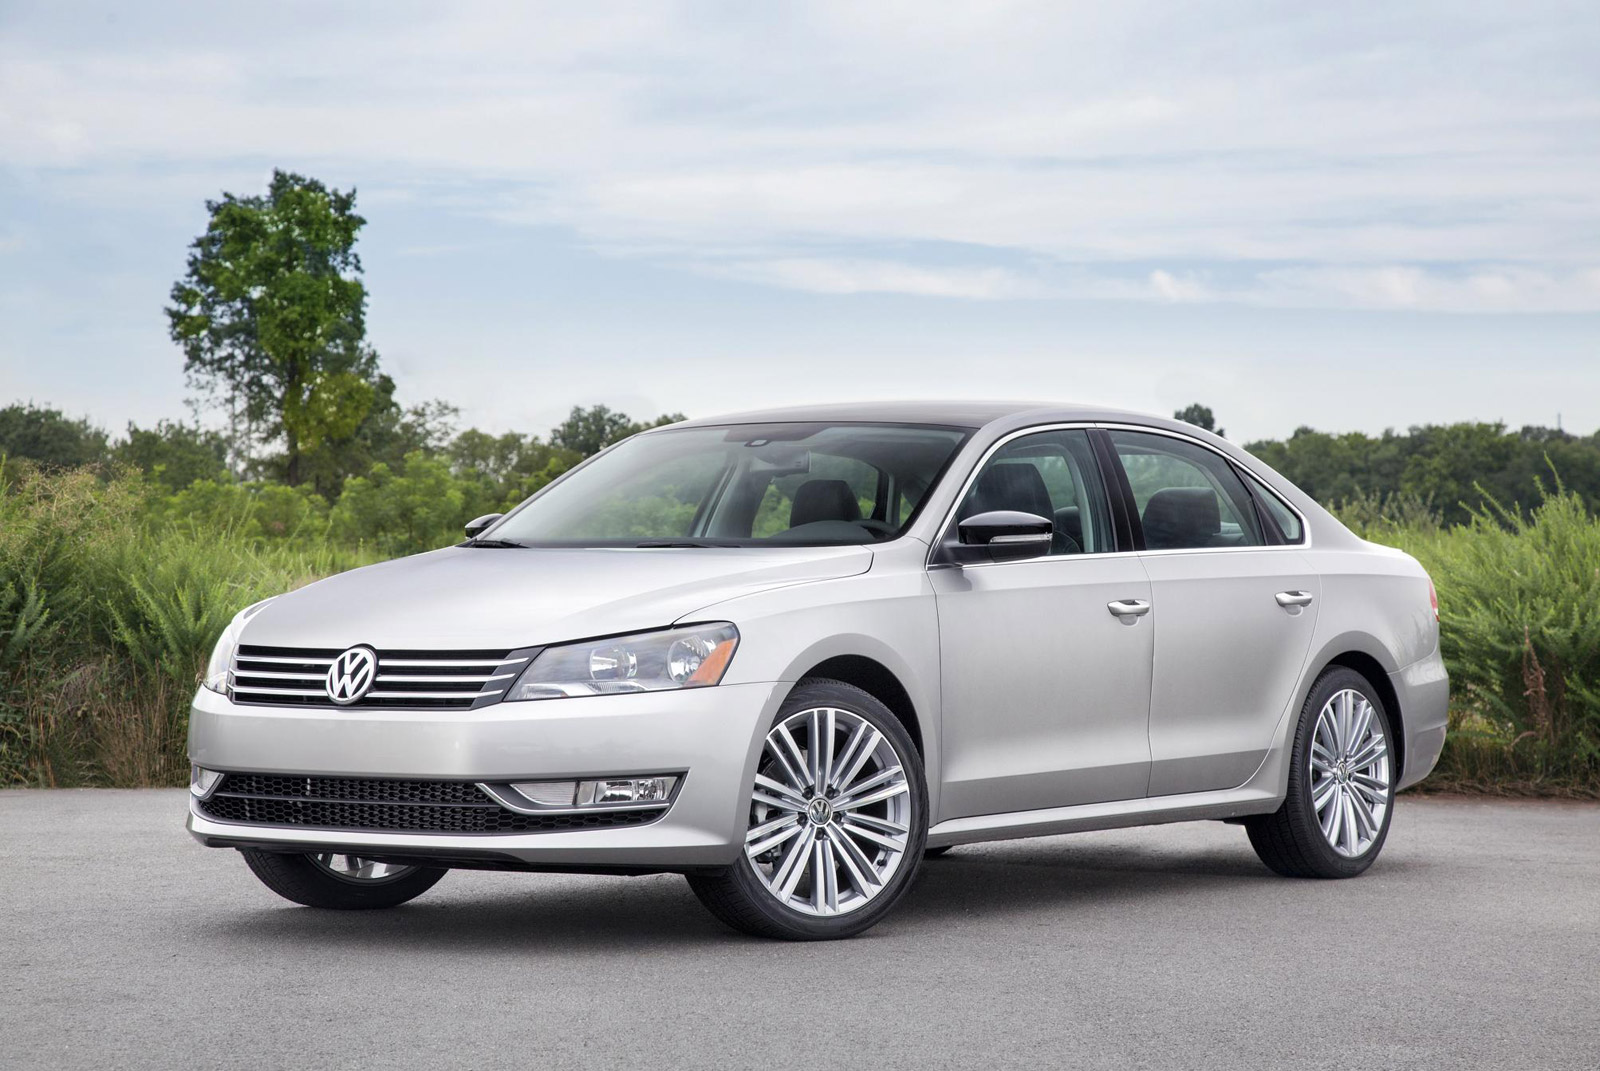 2014 volkswagen passat vw review ratings specs prices and photos the car connection. Black Bedroom Furniture Sets. Home Design Ideas